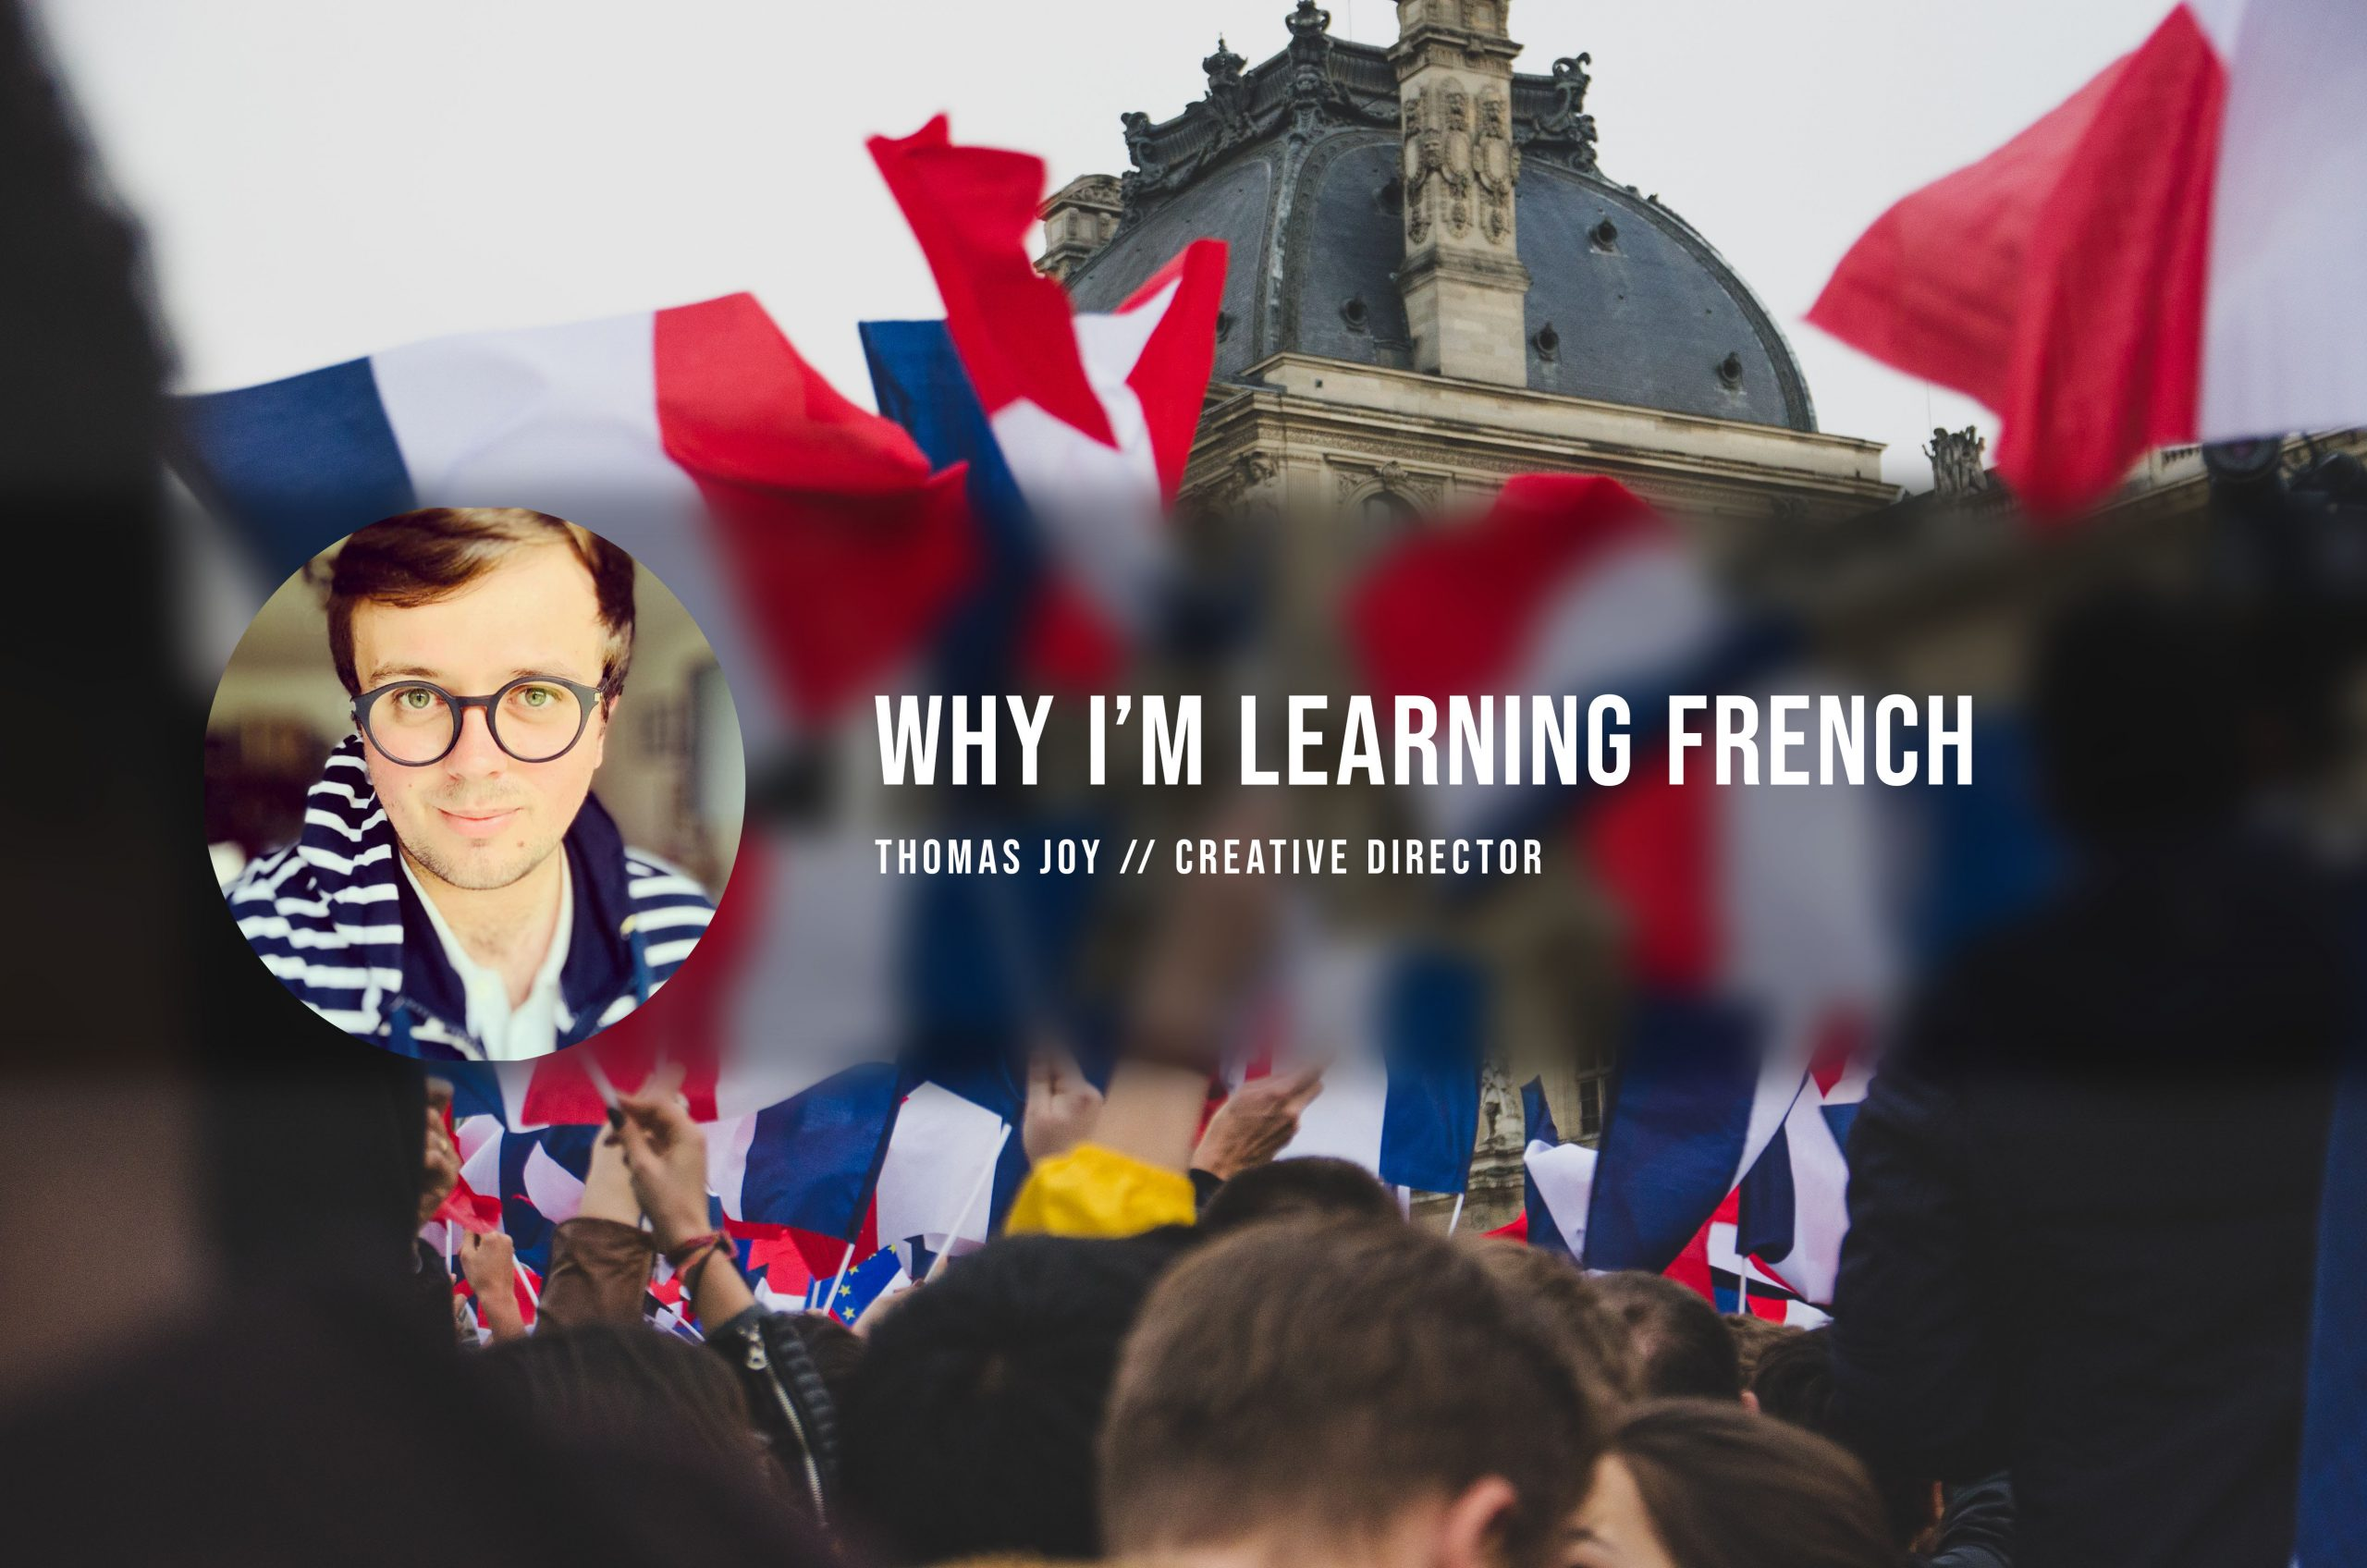 Why I'm Learning French